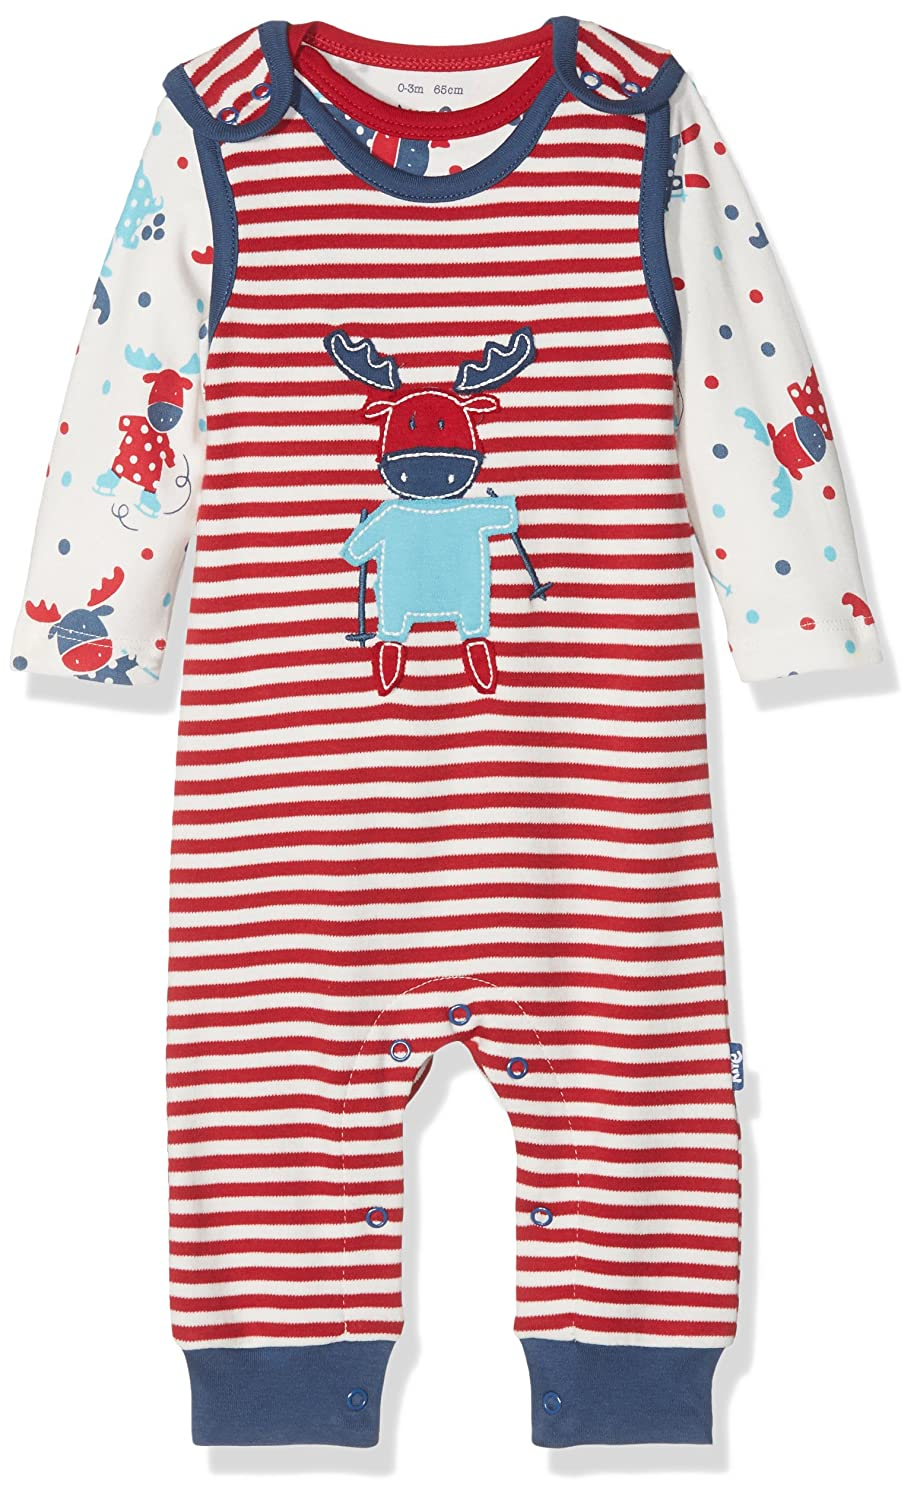 Kite Baby Moose Dungaree Set Clothing BU055